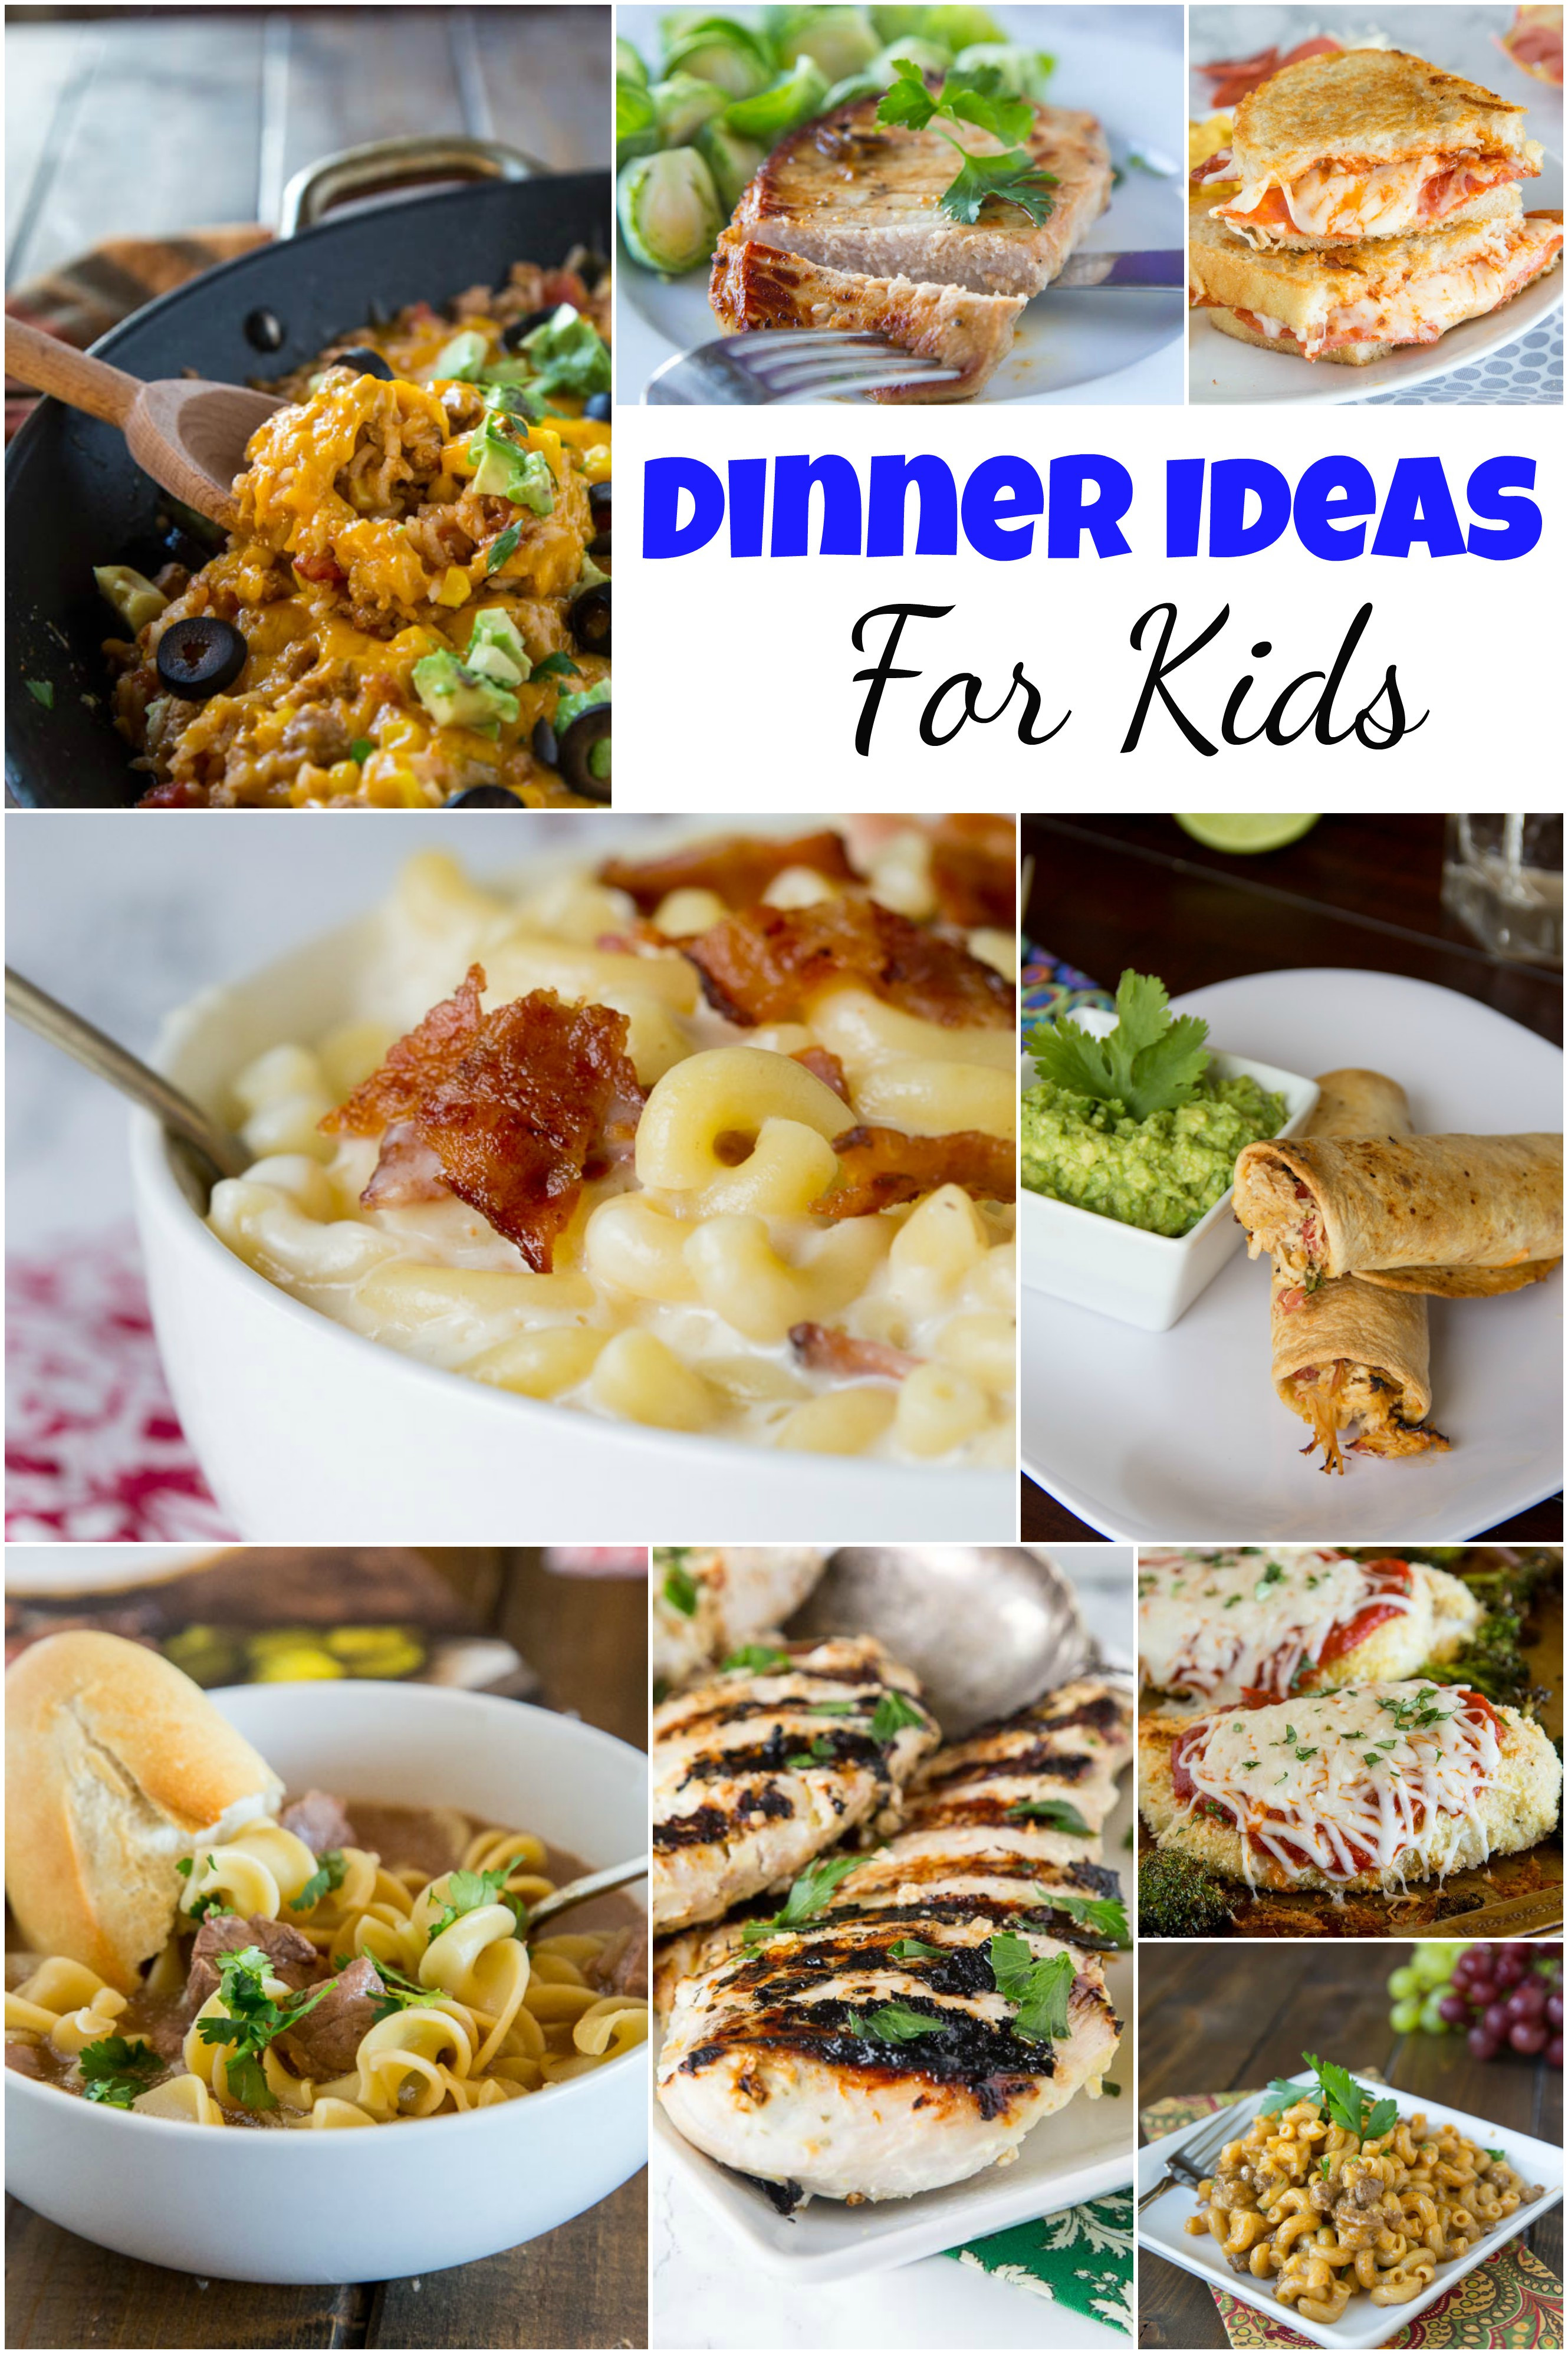 Kids Dinner Receipes  Dinner Ideas for Kids Dinners Dishes and Desserts